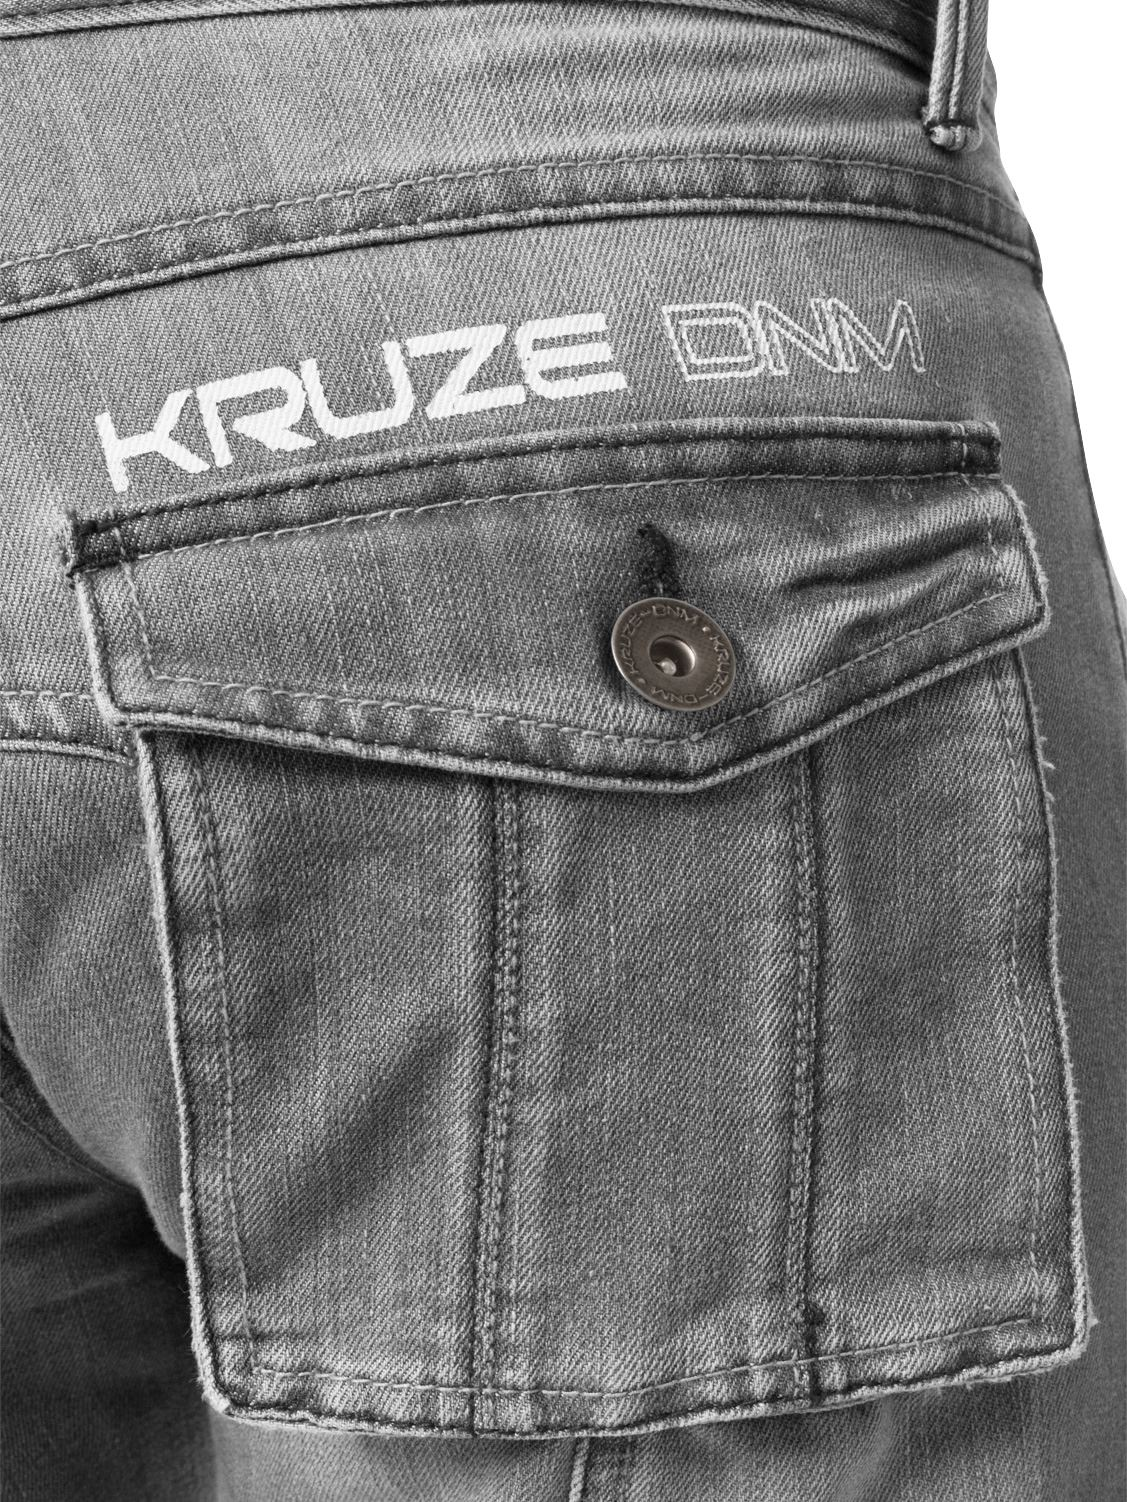 Kruze-Mens-Cargo-Combat-Jeans-Casual-Work-Denim-Pants-Big-Tall-All-Waist-Sizes thumbnail 34